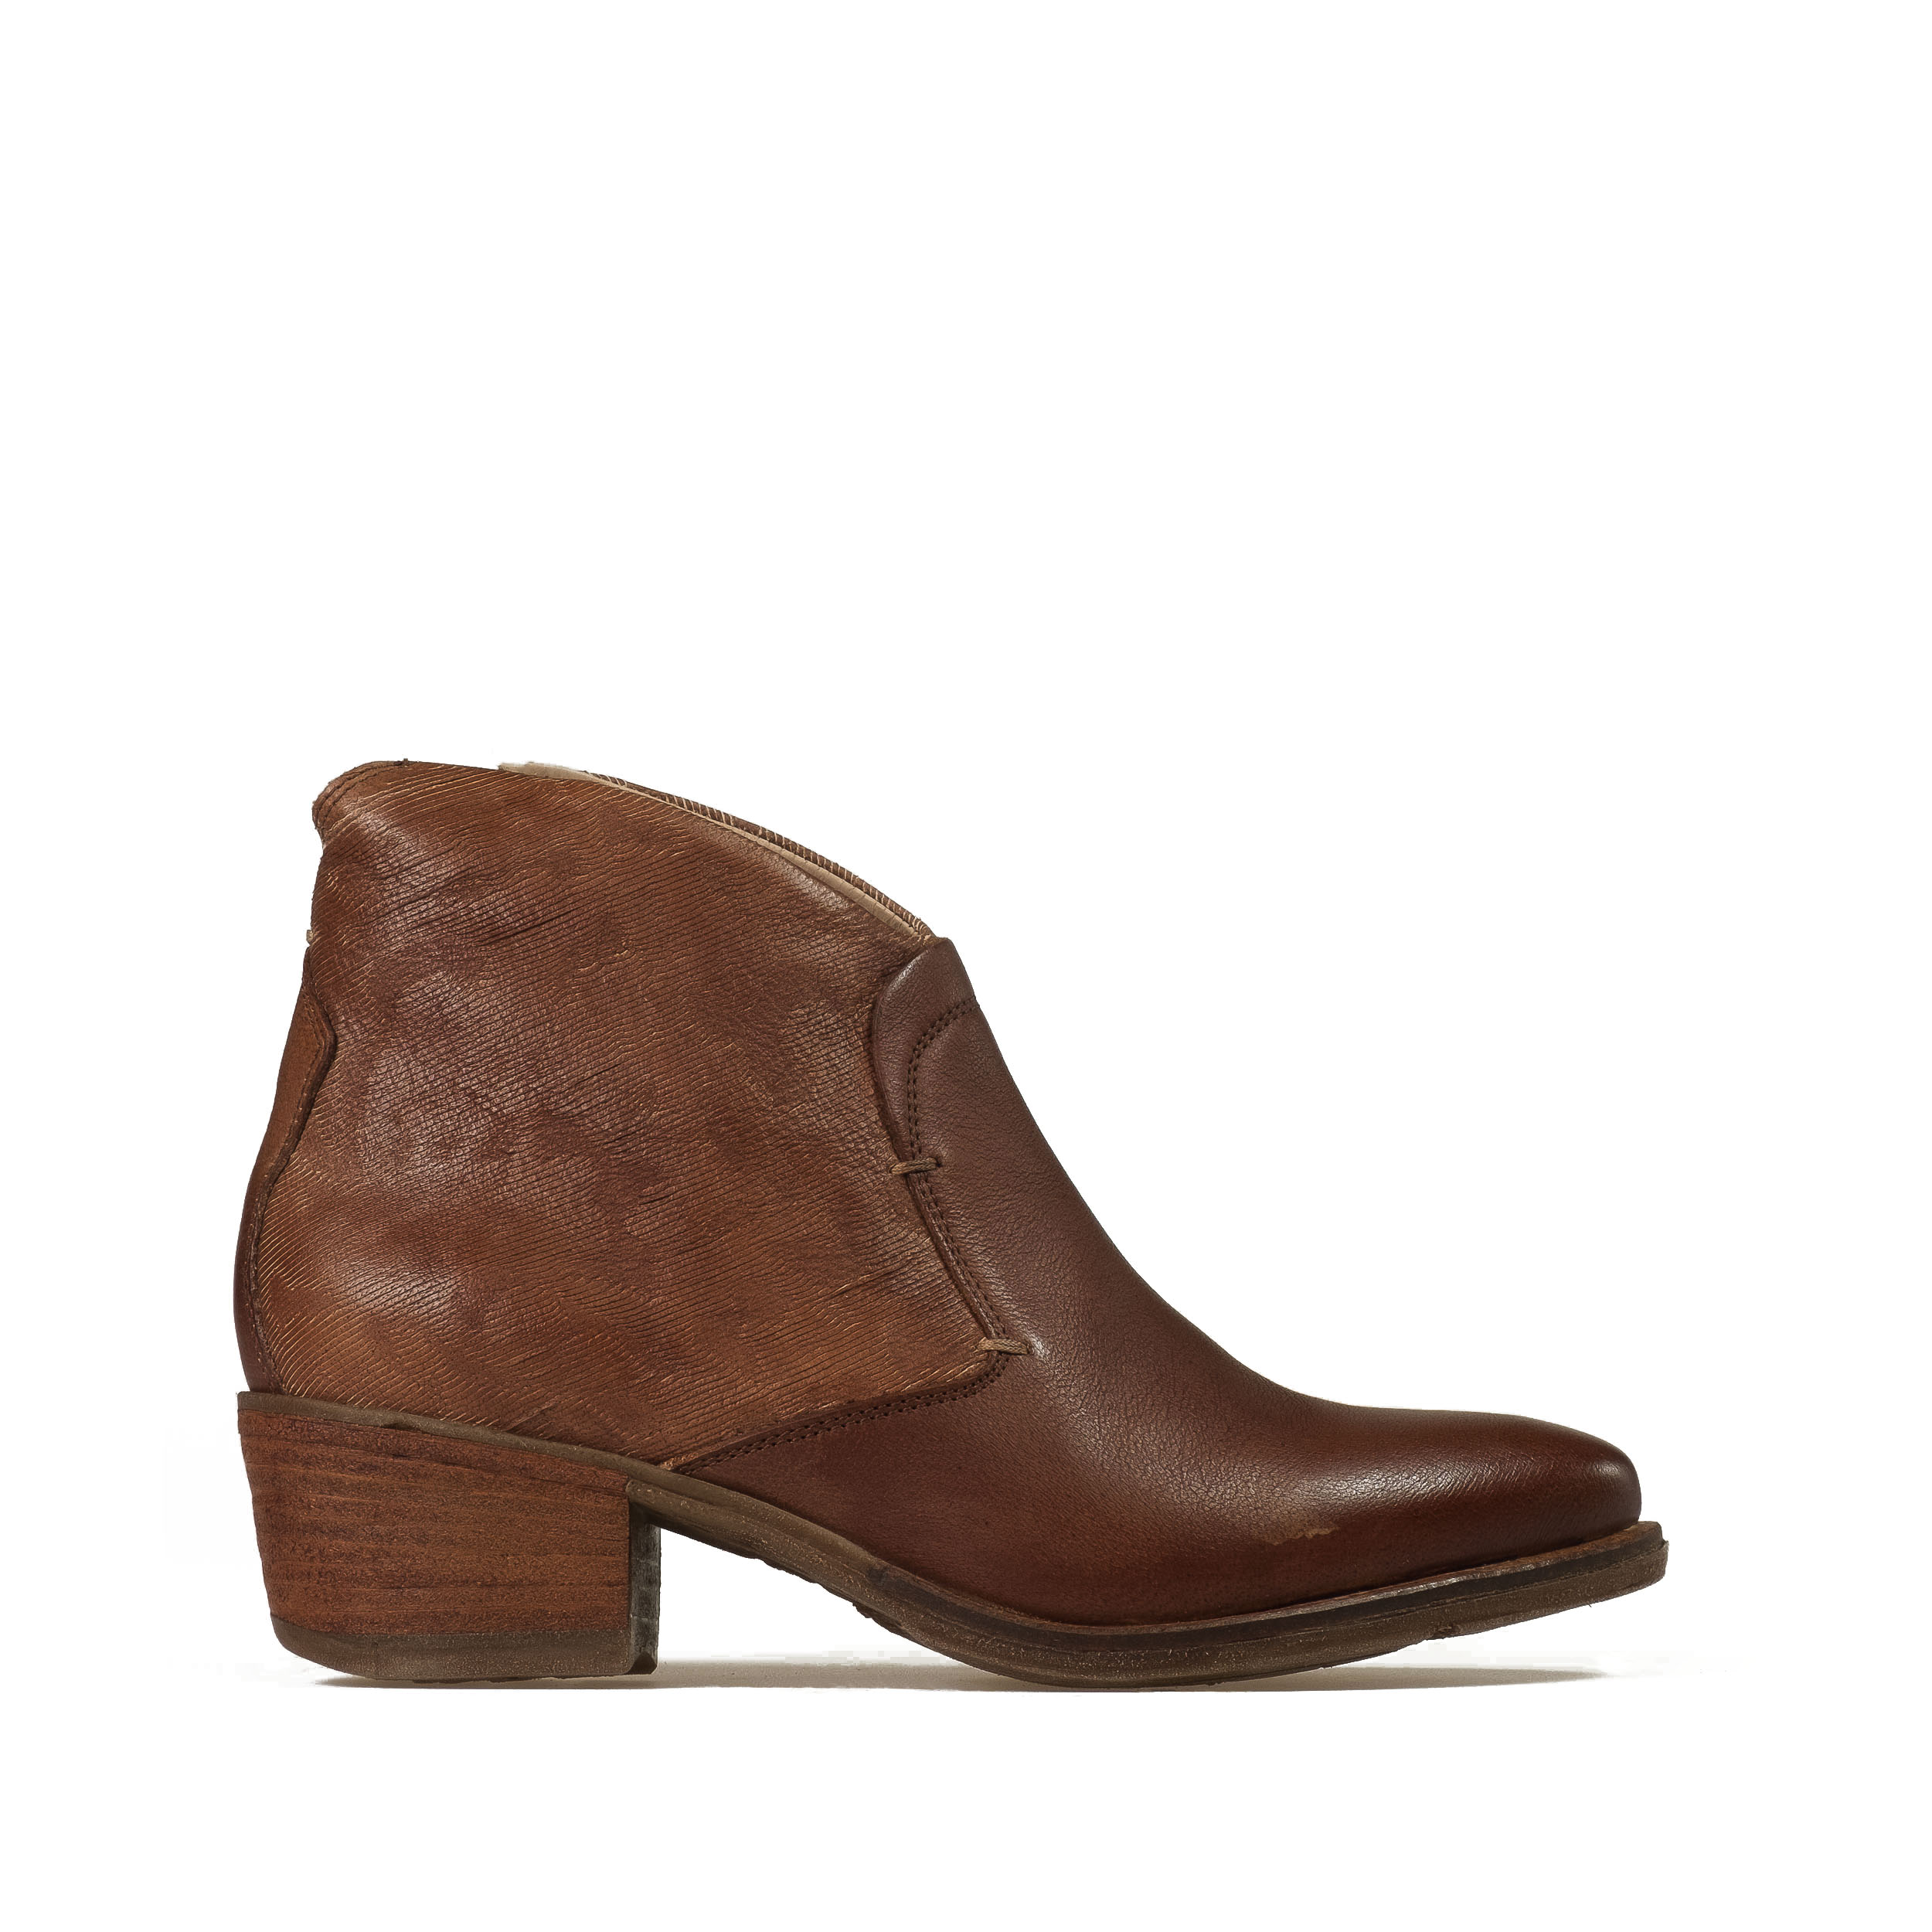 Ankle italian lady's boot tex style